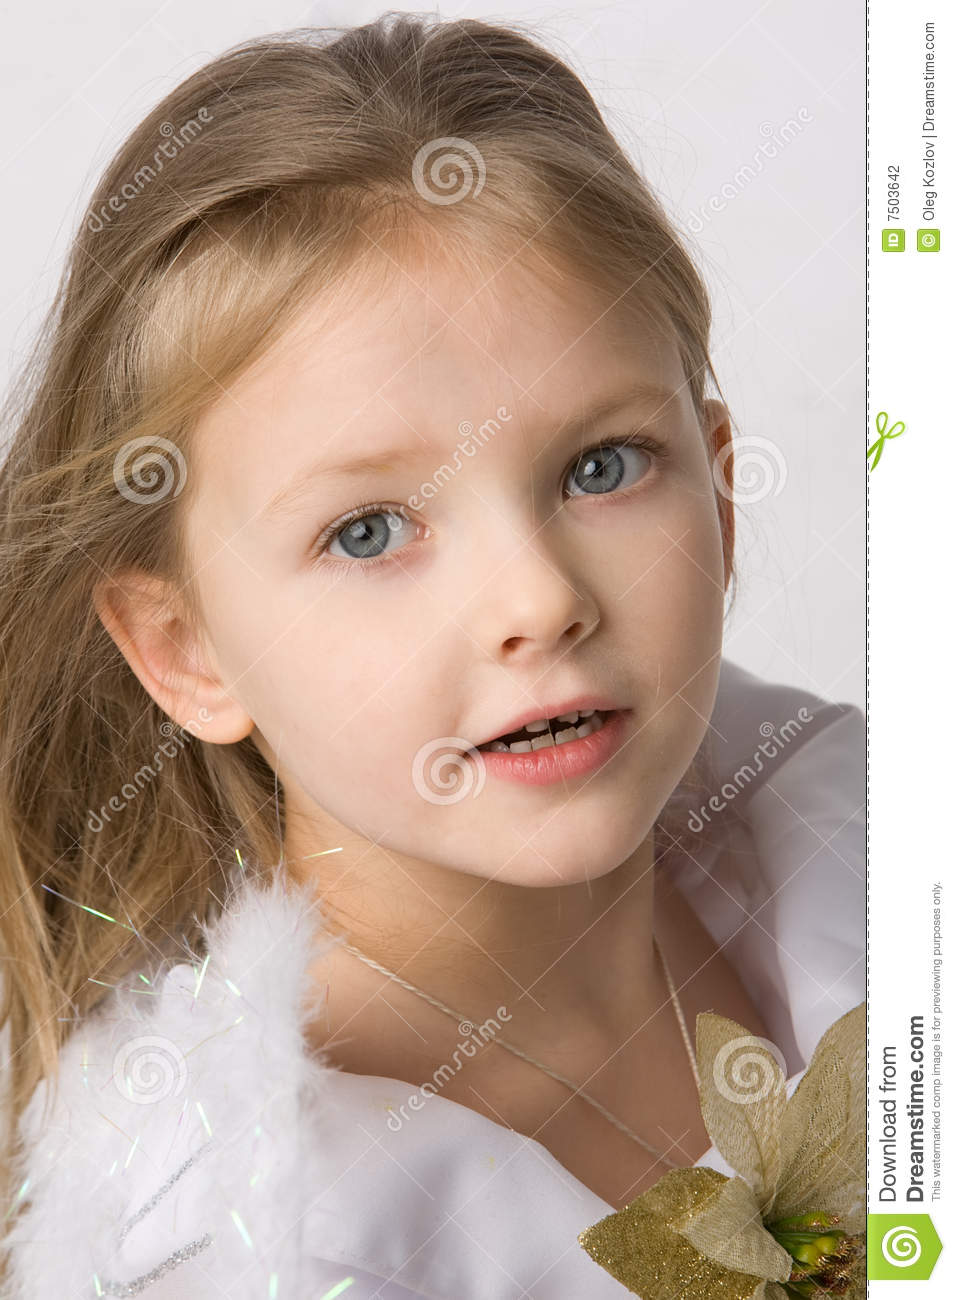 Beautiful Little Girl Stock Photo Image Of Hair, Delighted - 7503642-4008